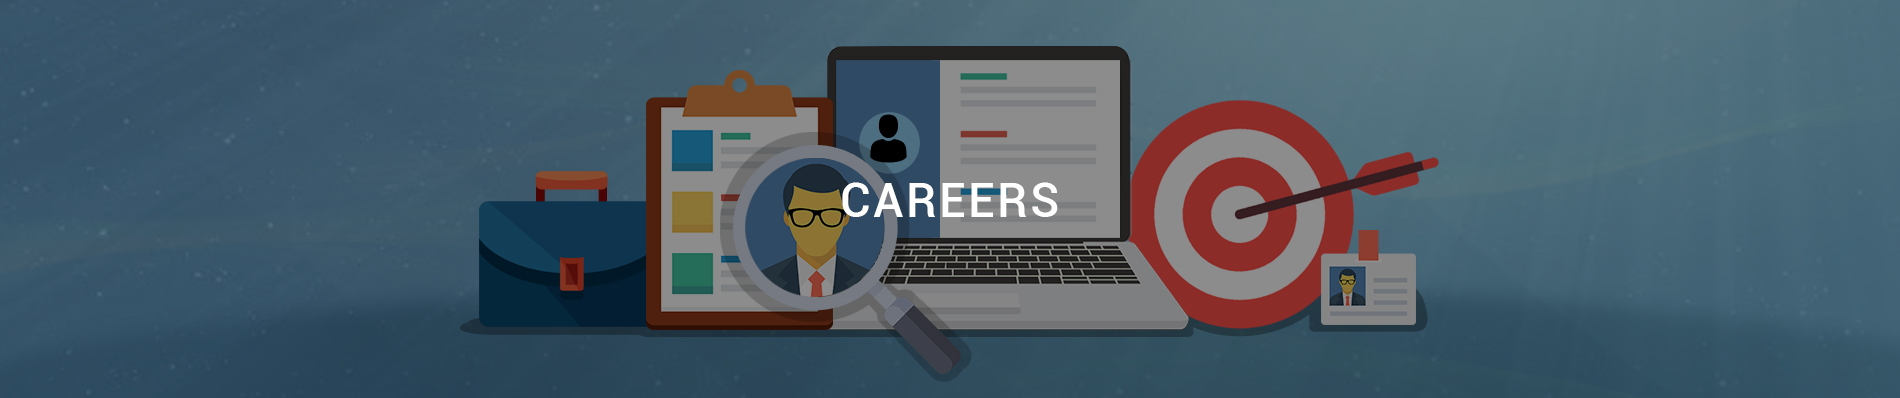 careers at biz4solutions